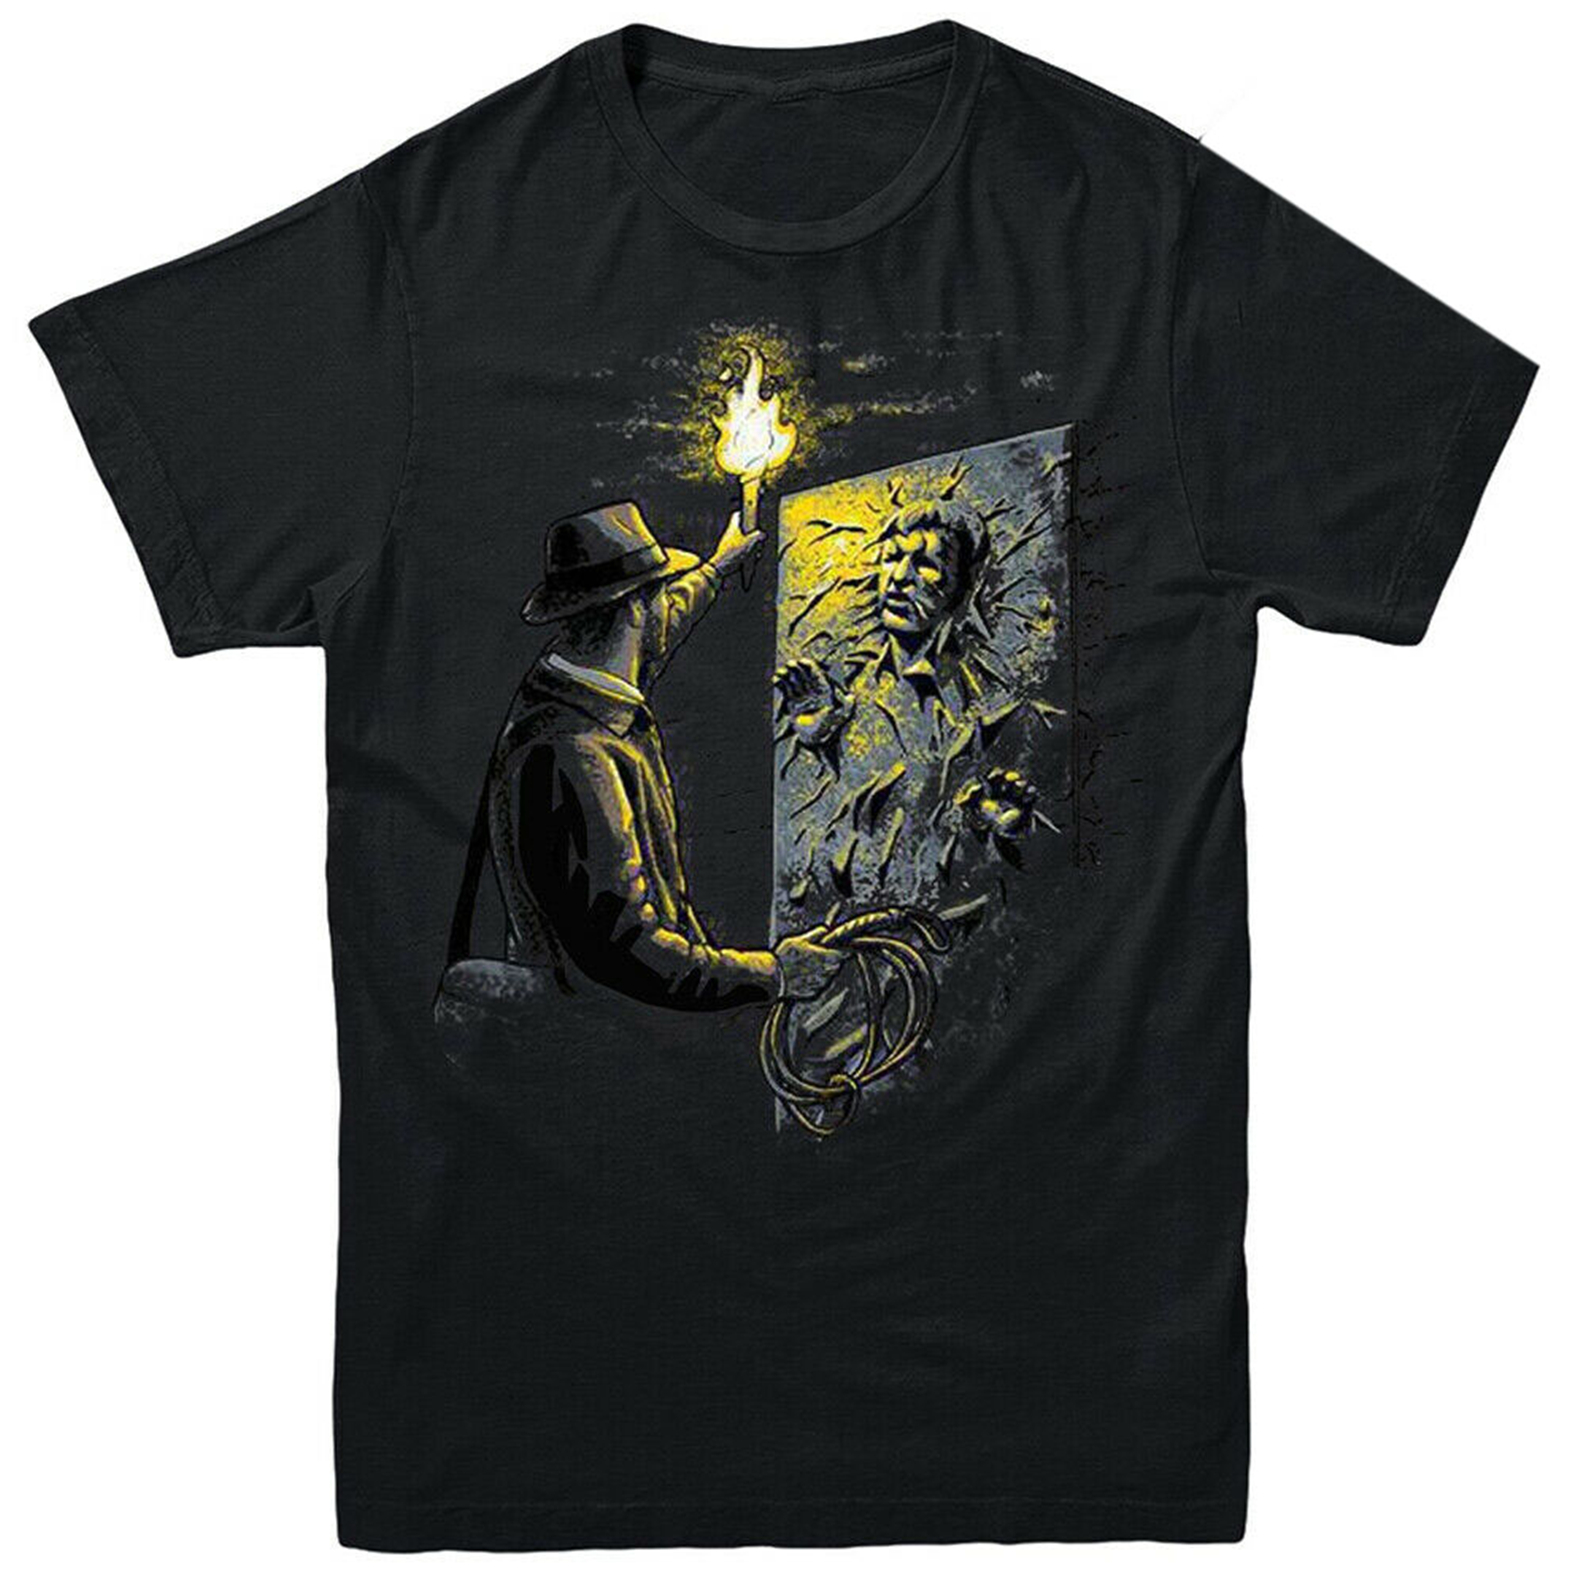 Indiana Jones Meets Han Solo T-Shirt 80's Cult Movie Film Inspired Slim Fit Plus Size Tops Tee Shirt image